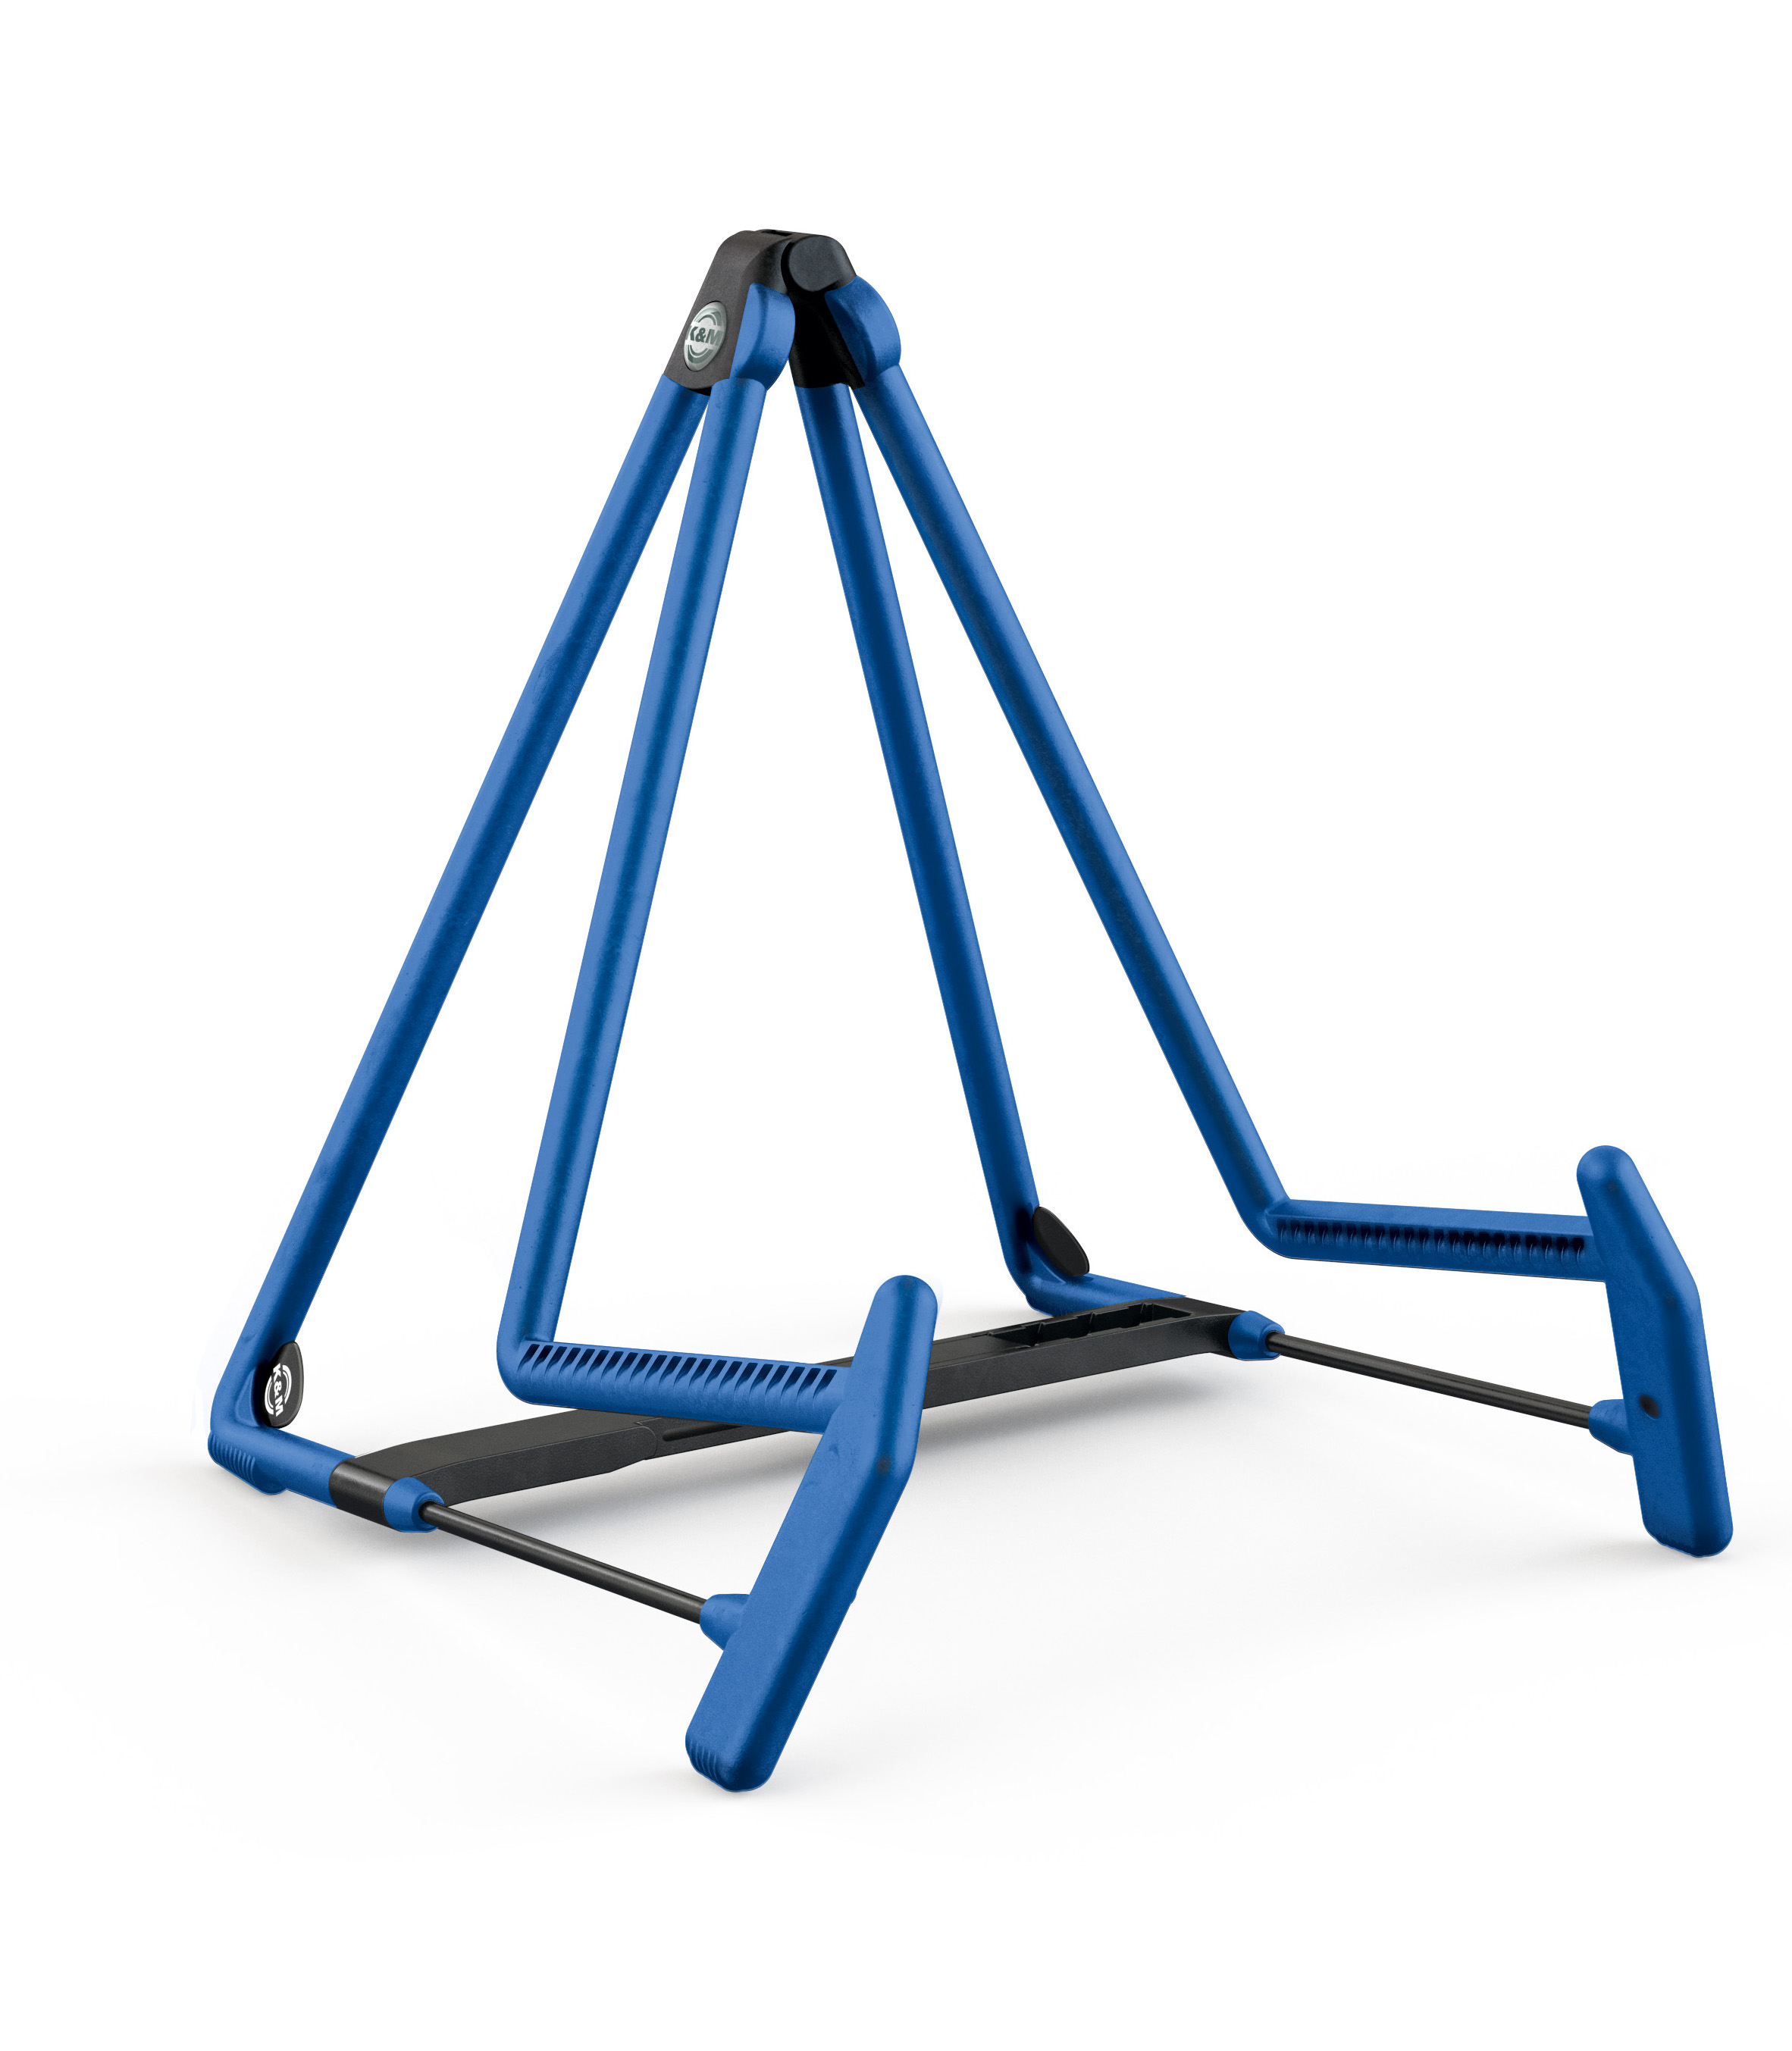 K&M - 17580 014 54 Guitar stand Blue Color